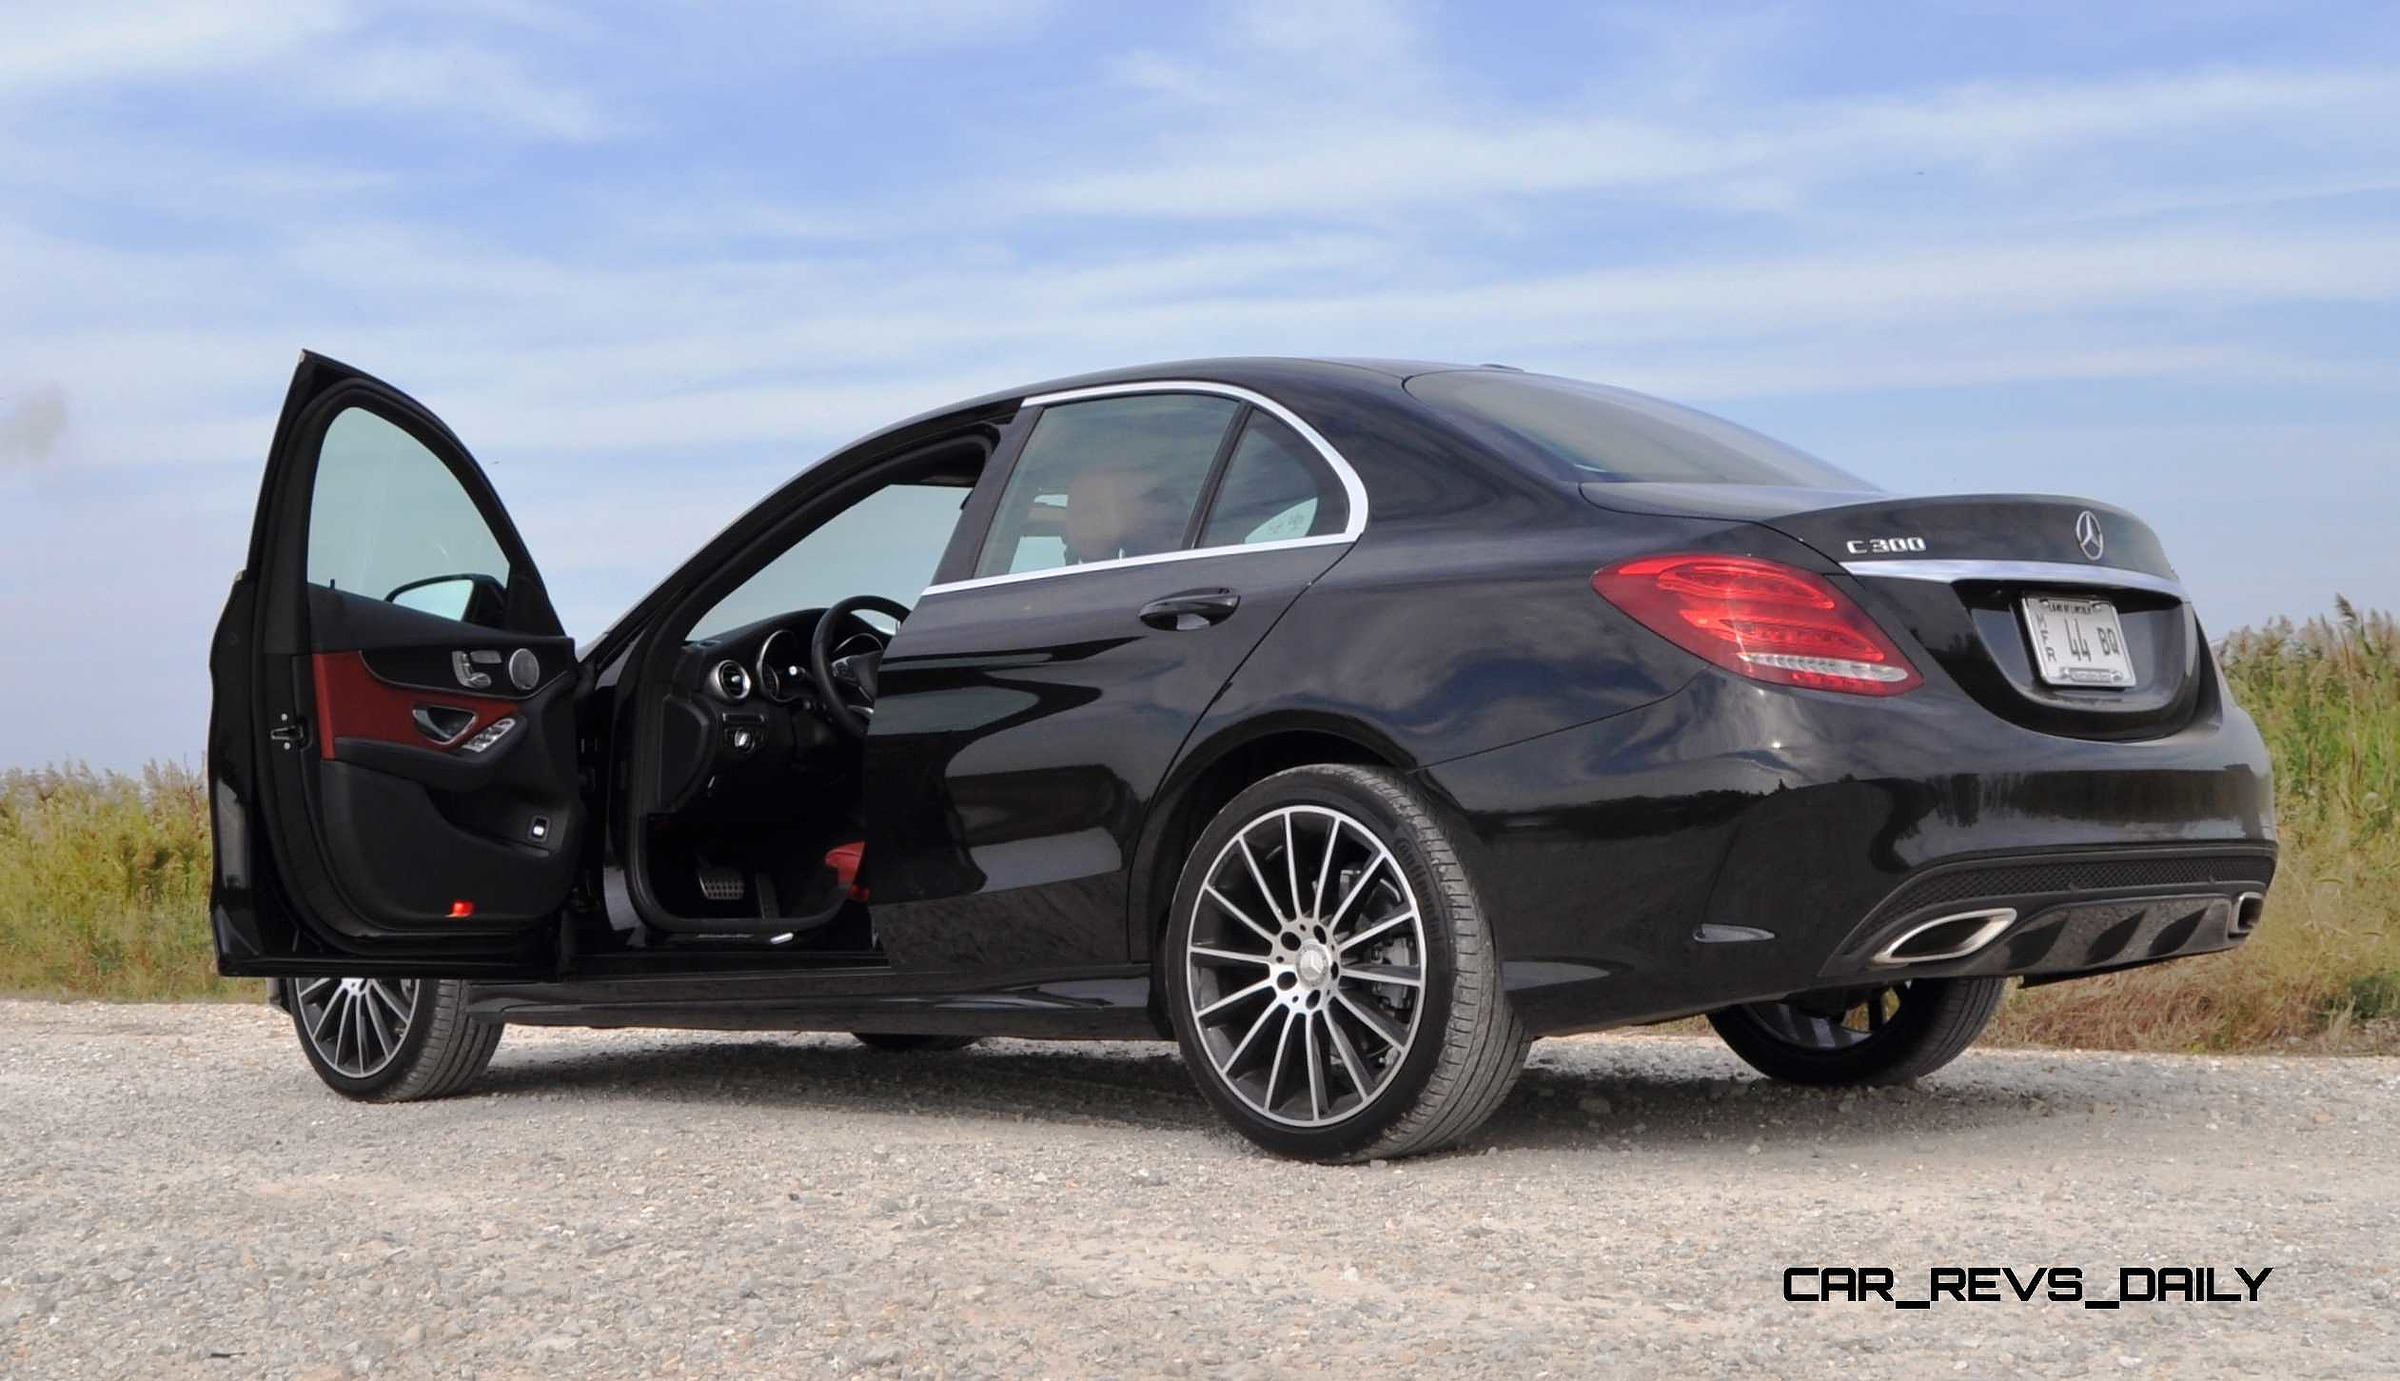 2015 mercedes benz c300 4matic sport review for 2015 mercedes benz c300 review